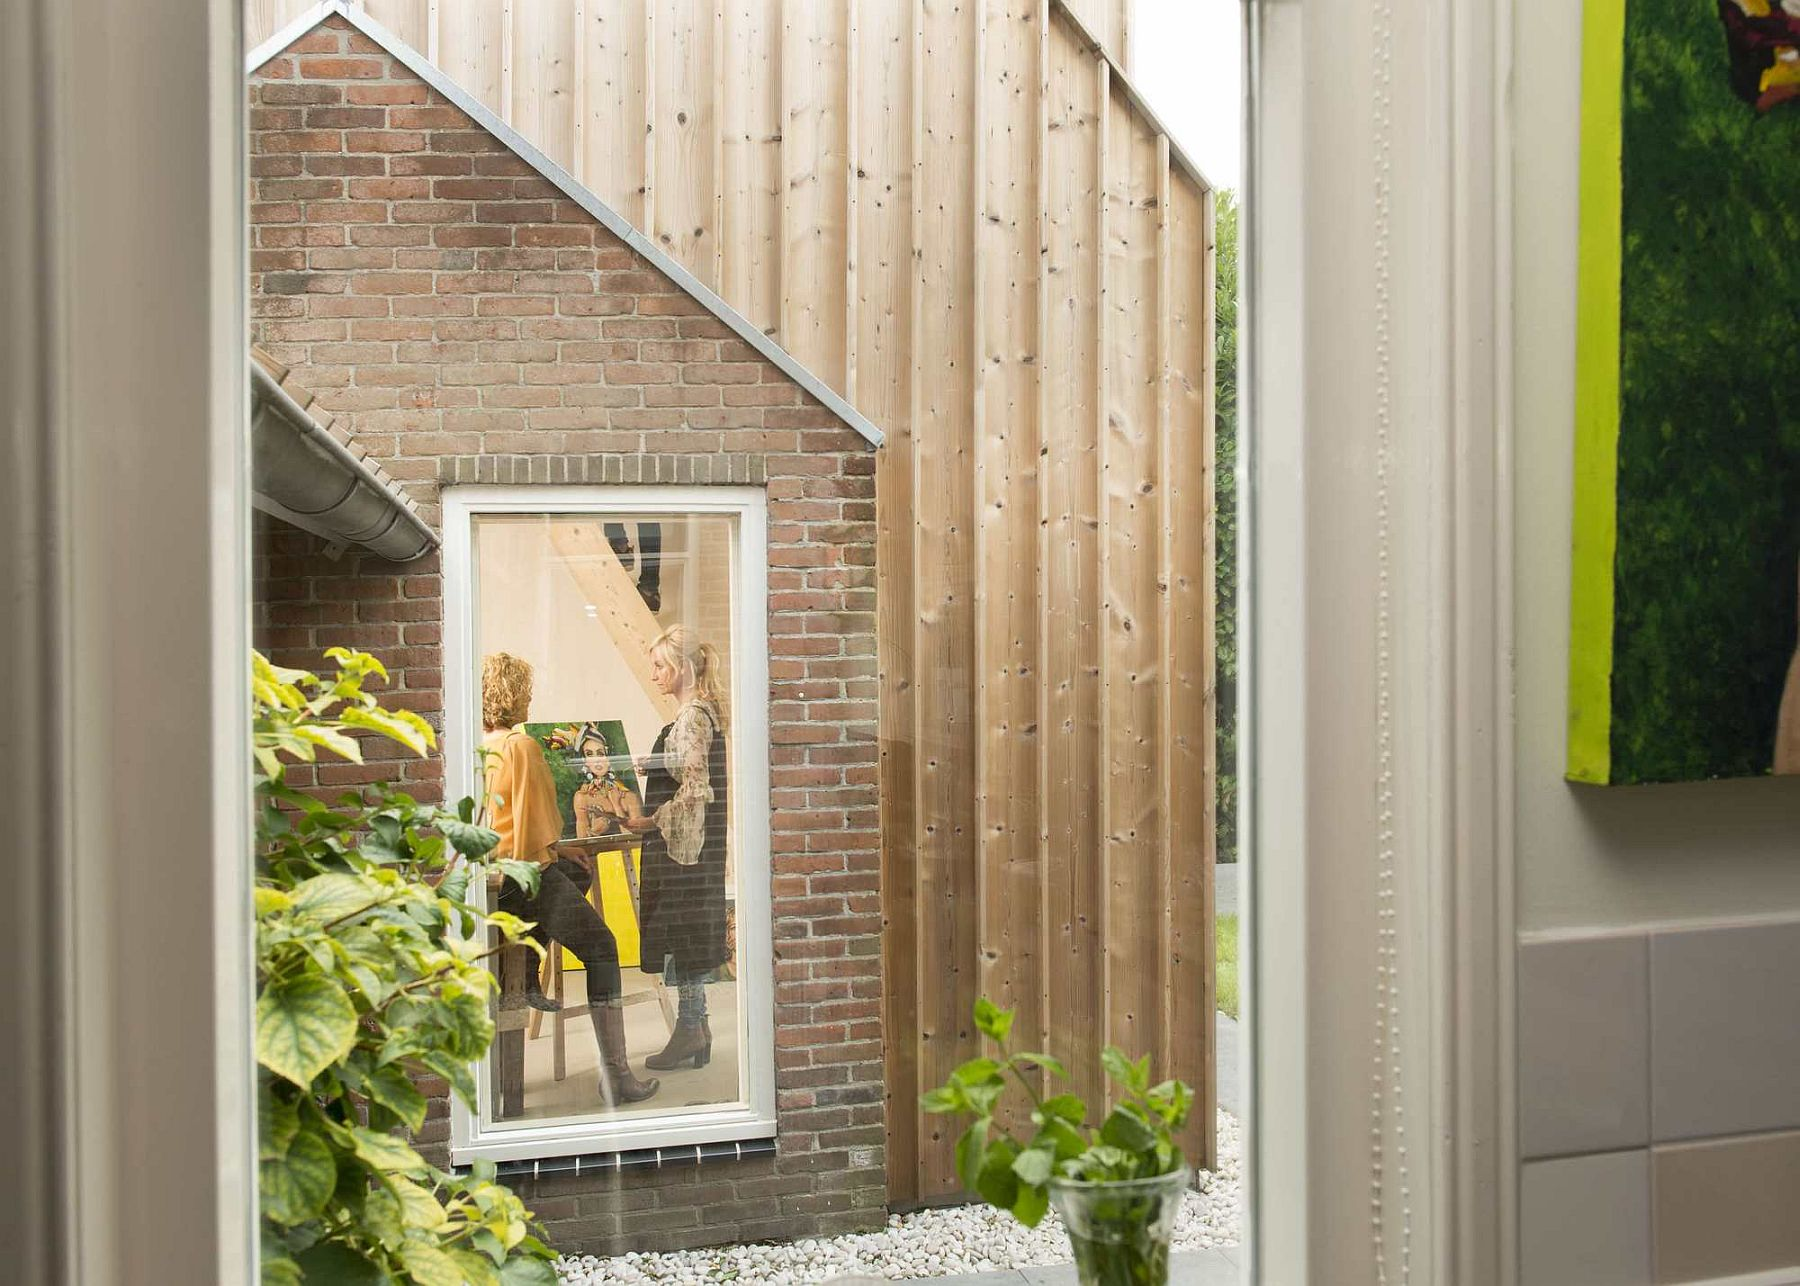 Beautifully framed windows add to the charm of the painting studio